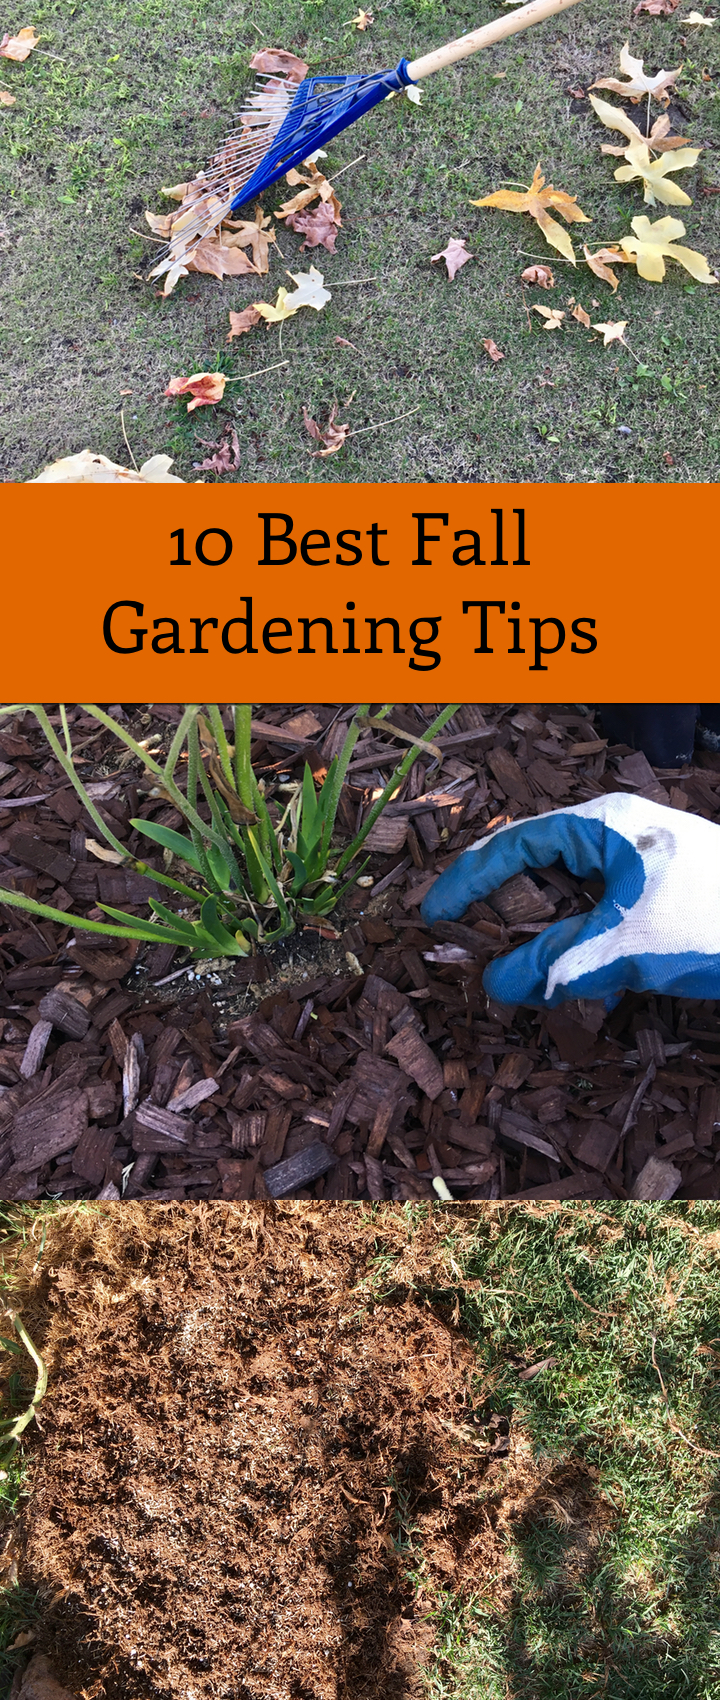 10 Best Fall Gardening Tips You Can Do This Fall